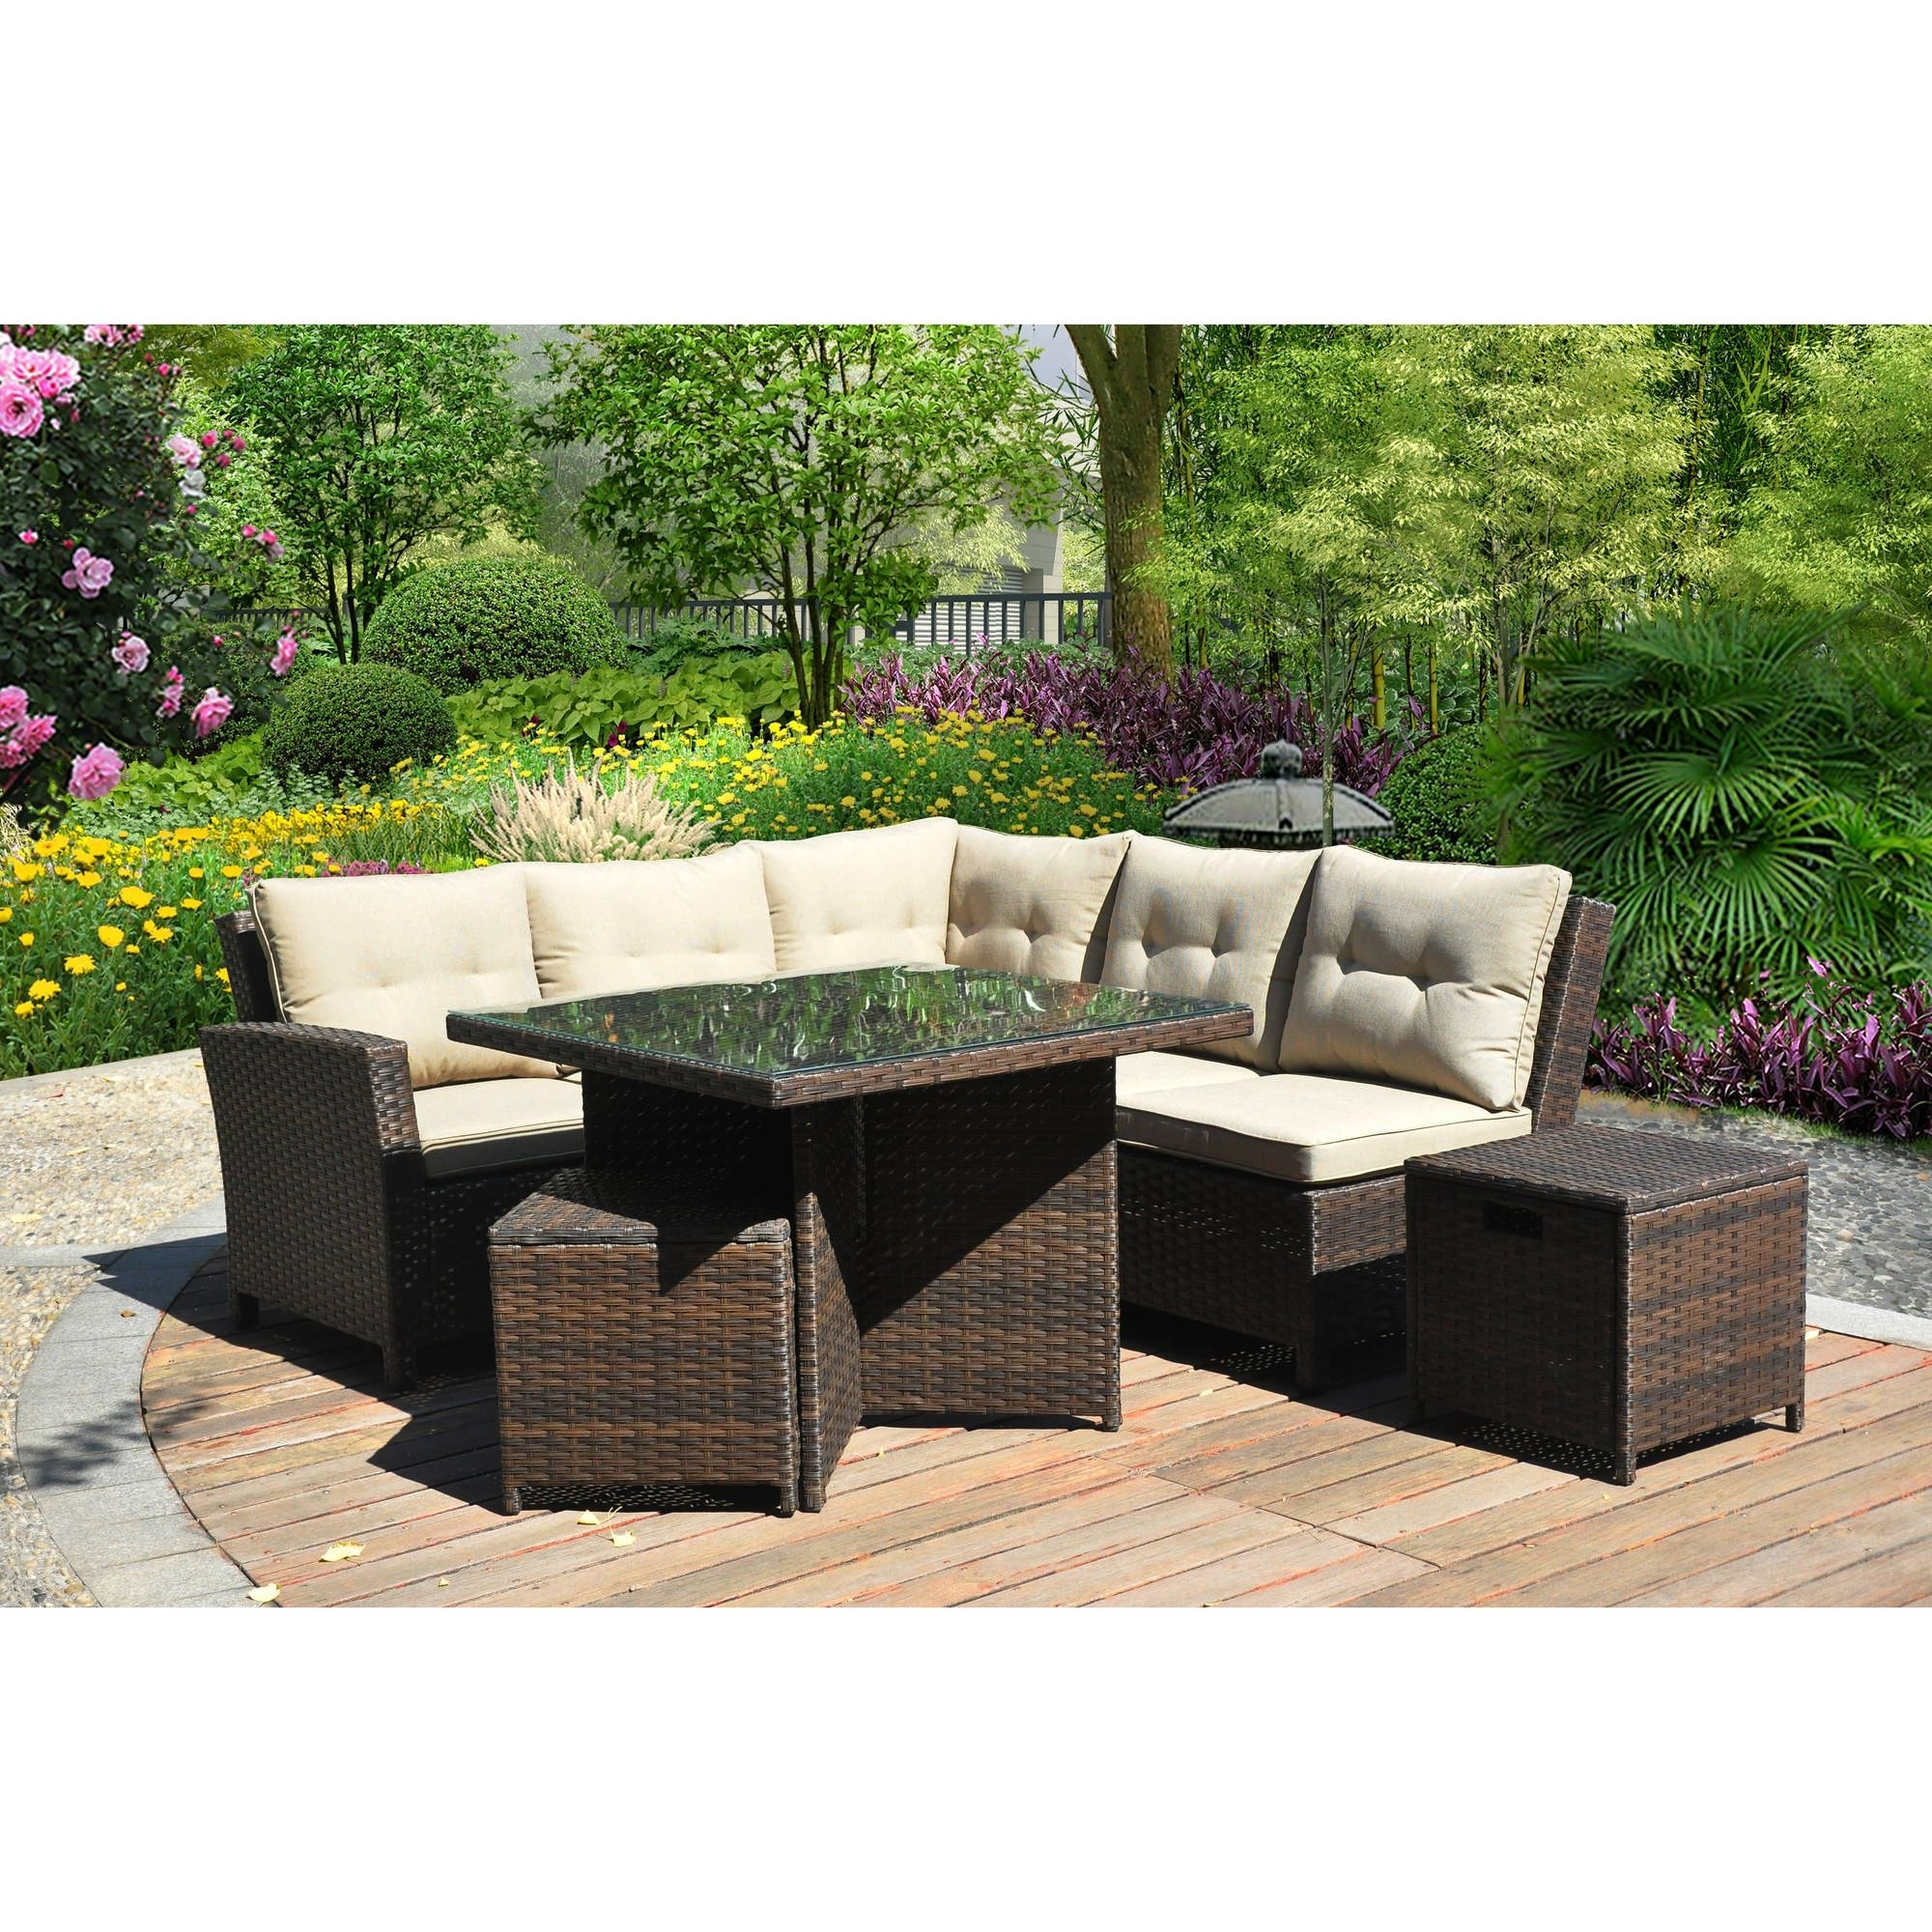 Well Known Raleigh Outdoor 5 Piece L Shape Wicker Sectional With Cushions Intended For Raleigh Nc Sectional Sofas (View 18 of 20)